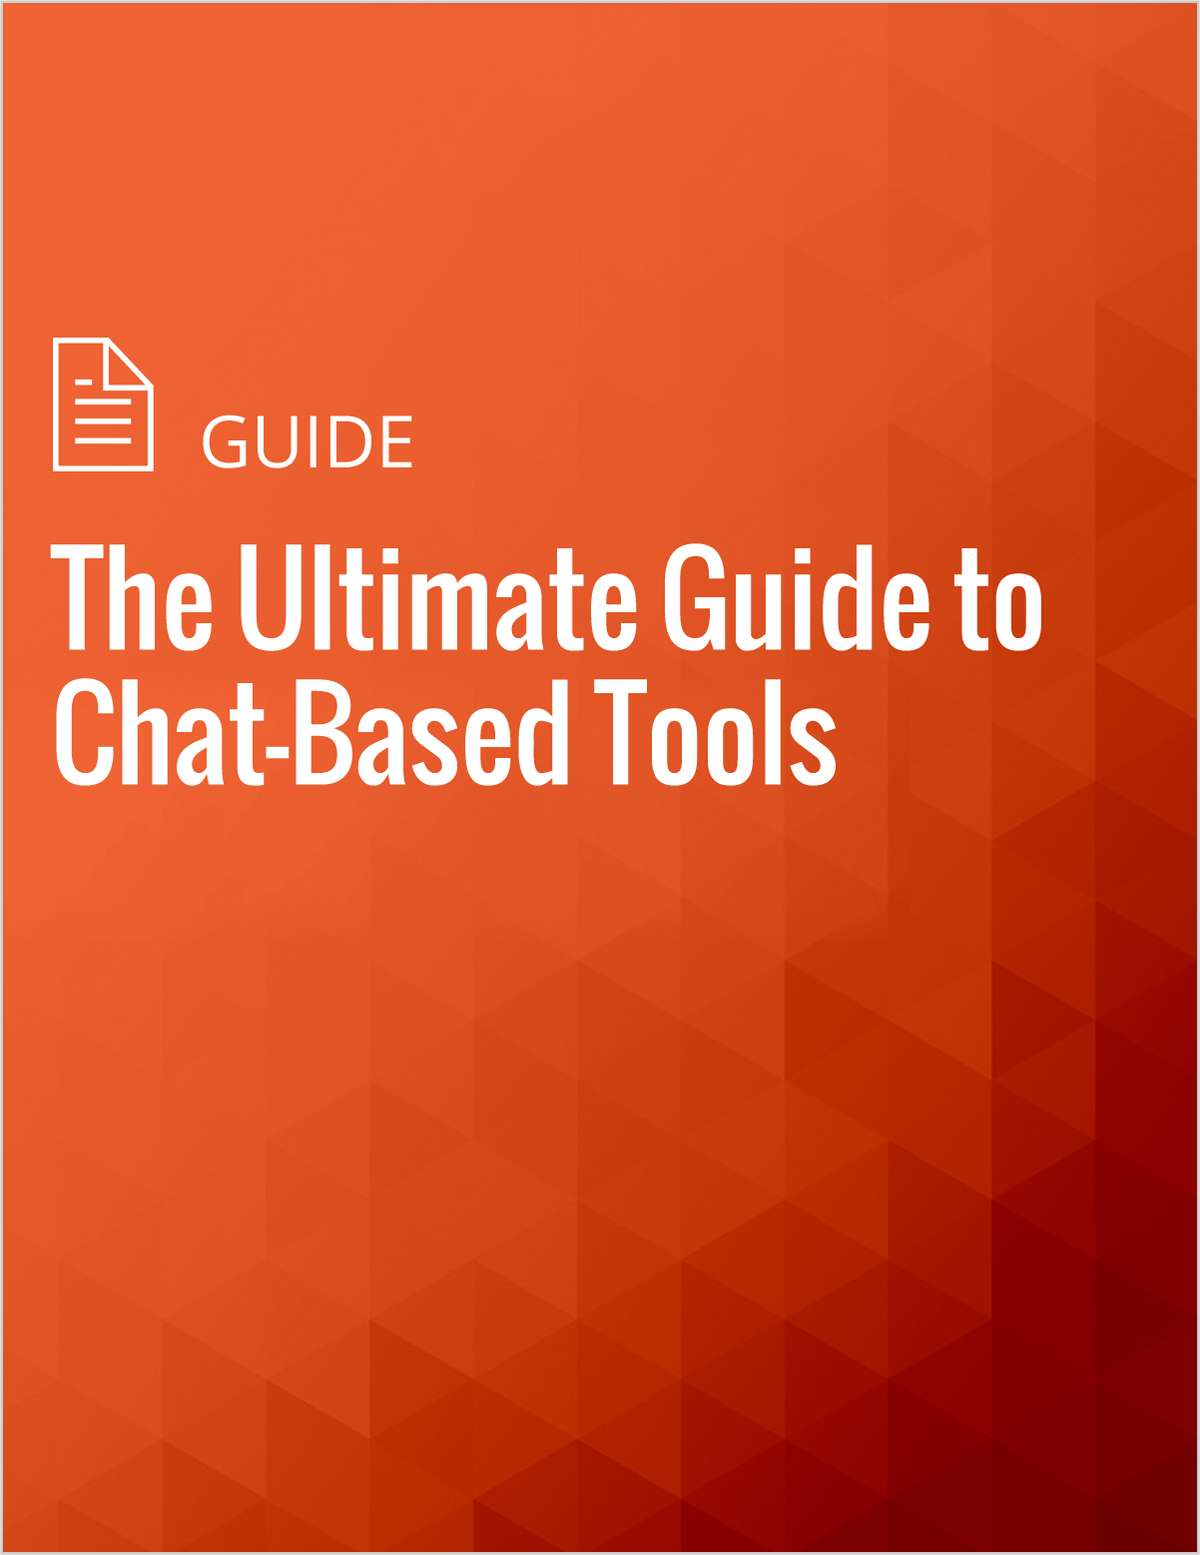 The Ultimate Guide to Chat-Based Tools